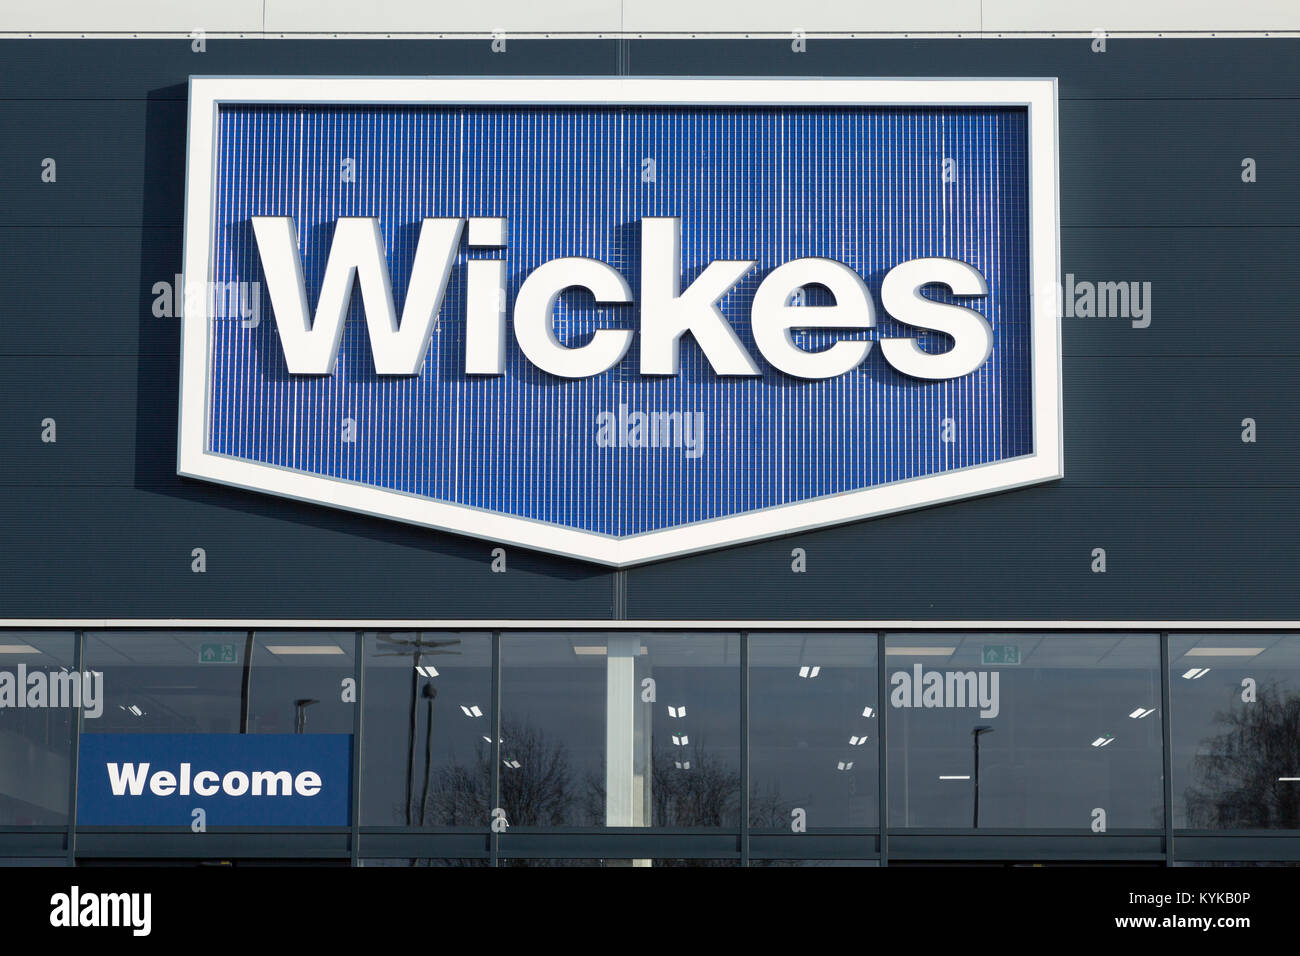 Wickes Store Stock Photos & Wickes Store Stock Images - Alamy